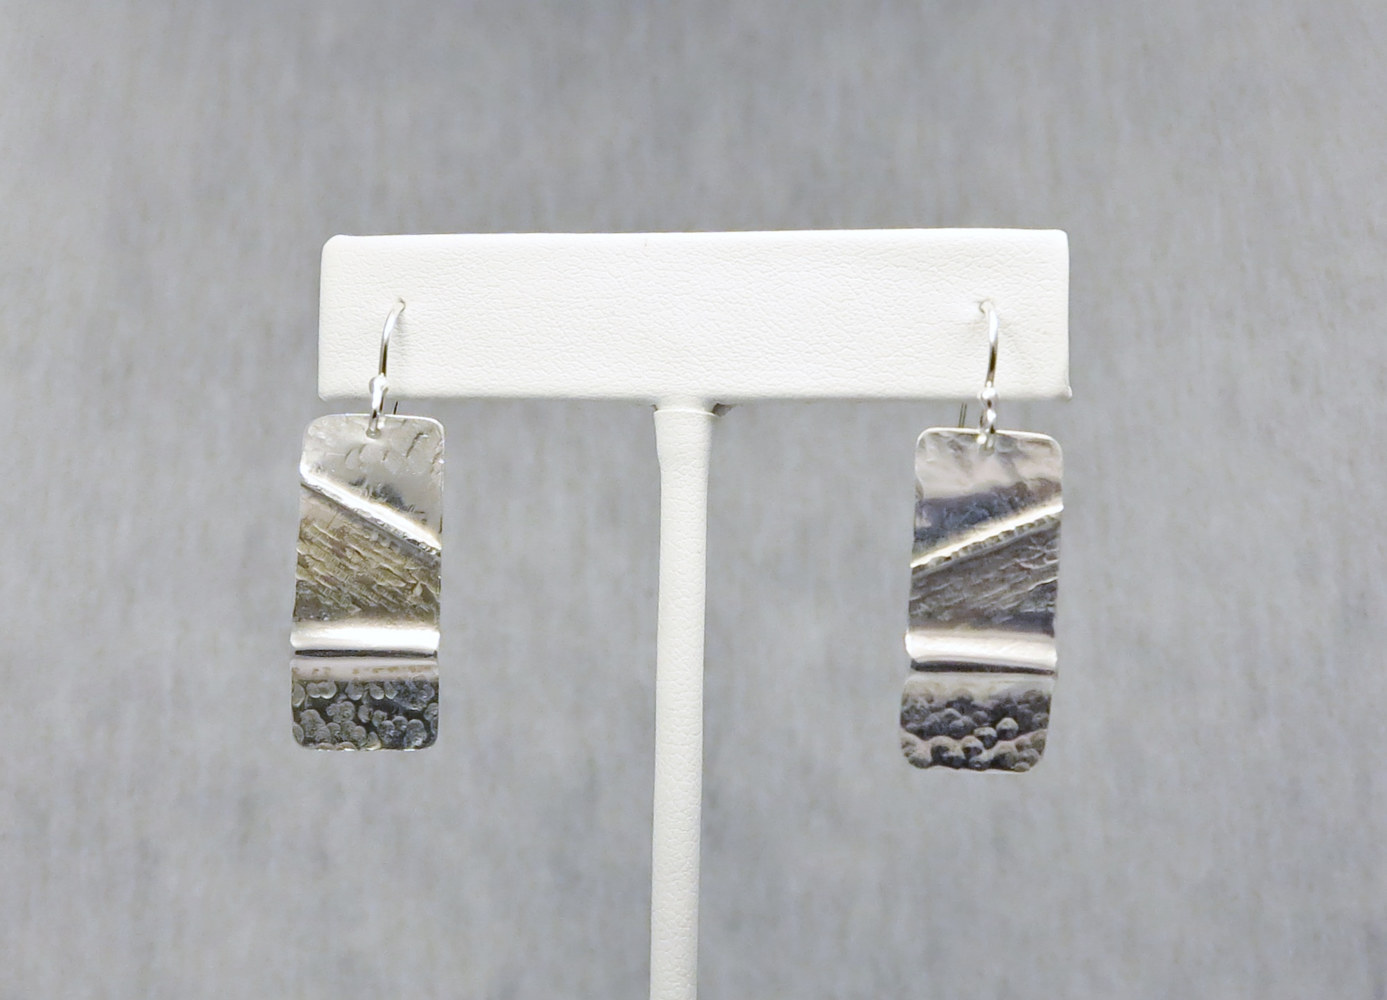 Argentium sterling silver 'fold form' earrings by Vicki Allesia